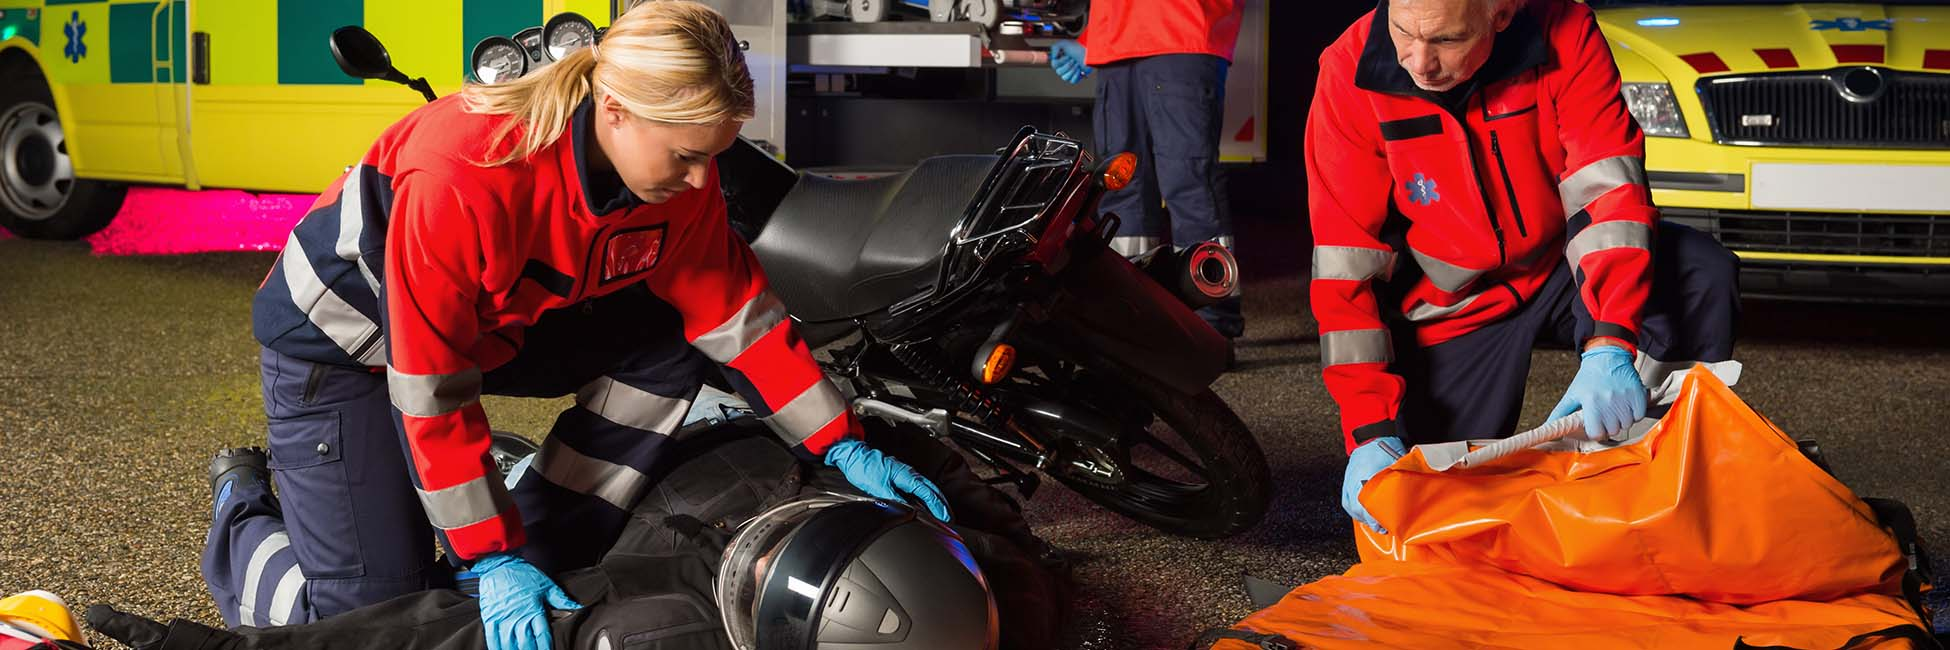 Motorcycle Accident Miami - Louis Law Group